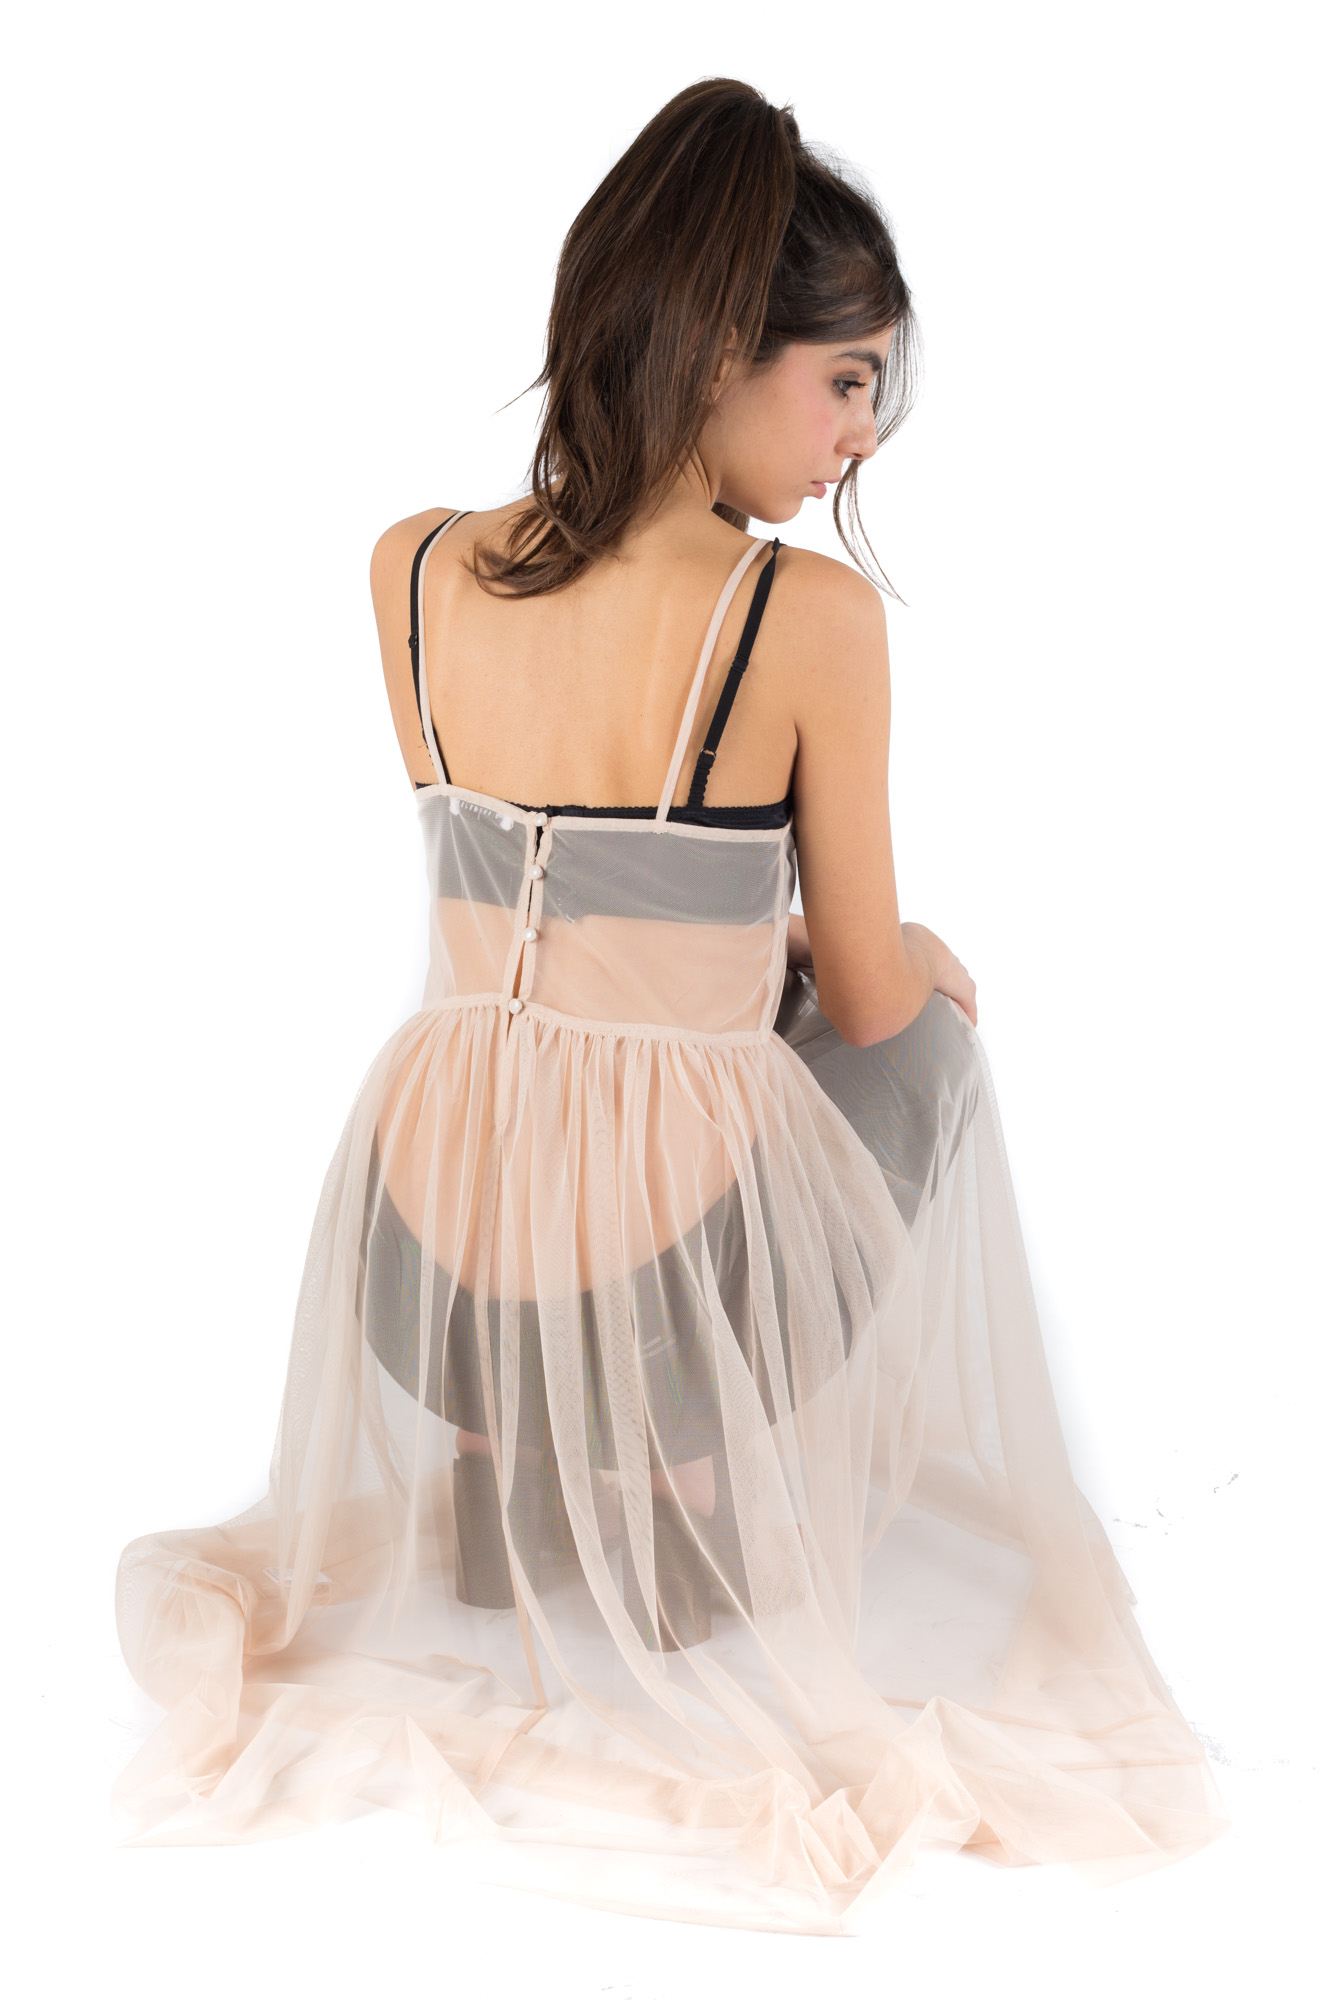 Glamorous - See-through sleeveless dress with back buttons